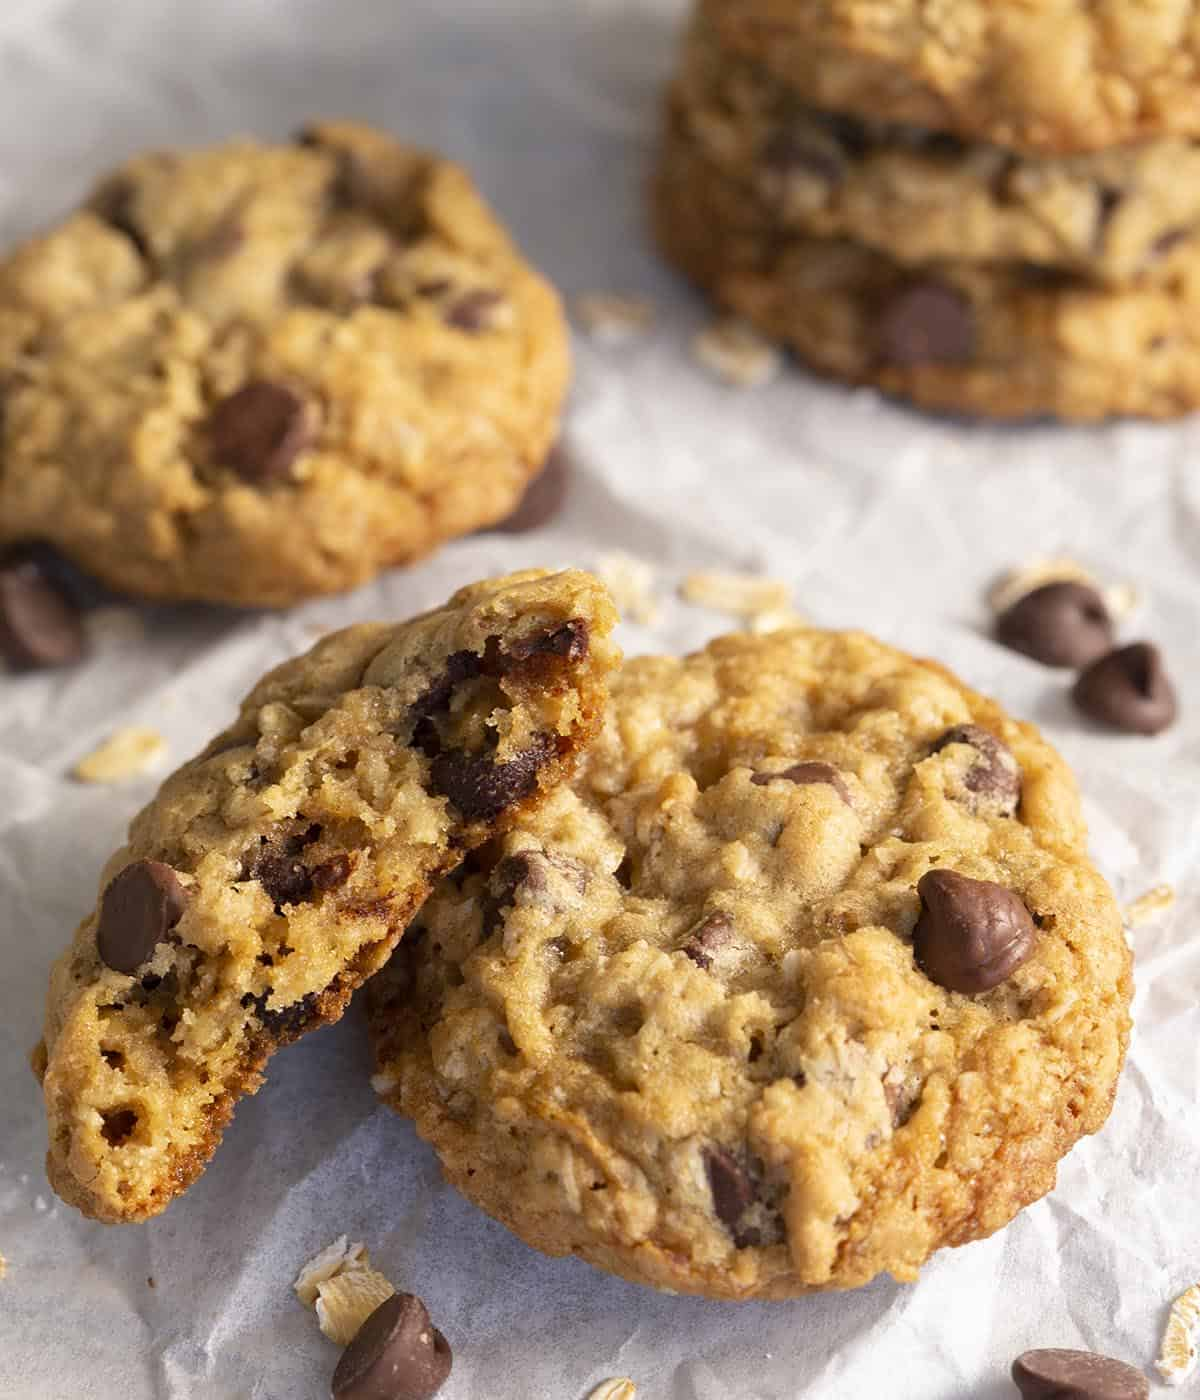 A group of Oatmeal Chocolate Chip cookies with on broken in half to show the chewy interior.